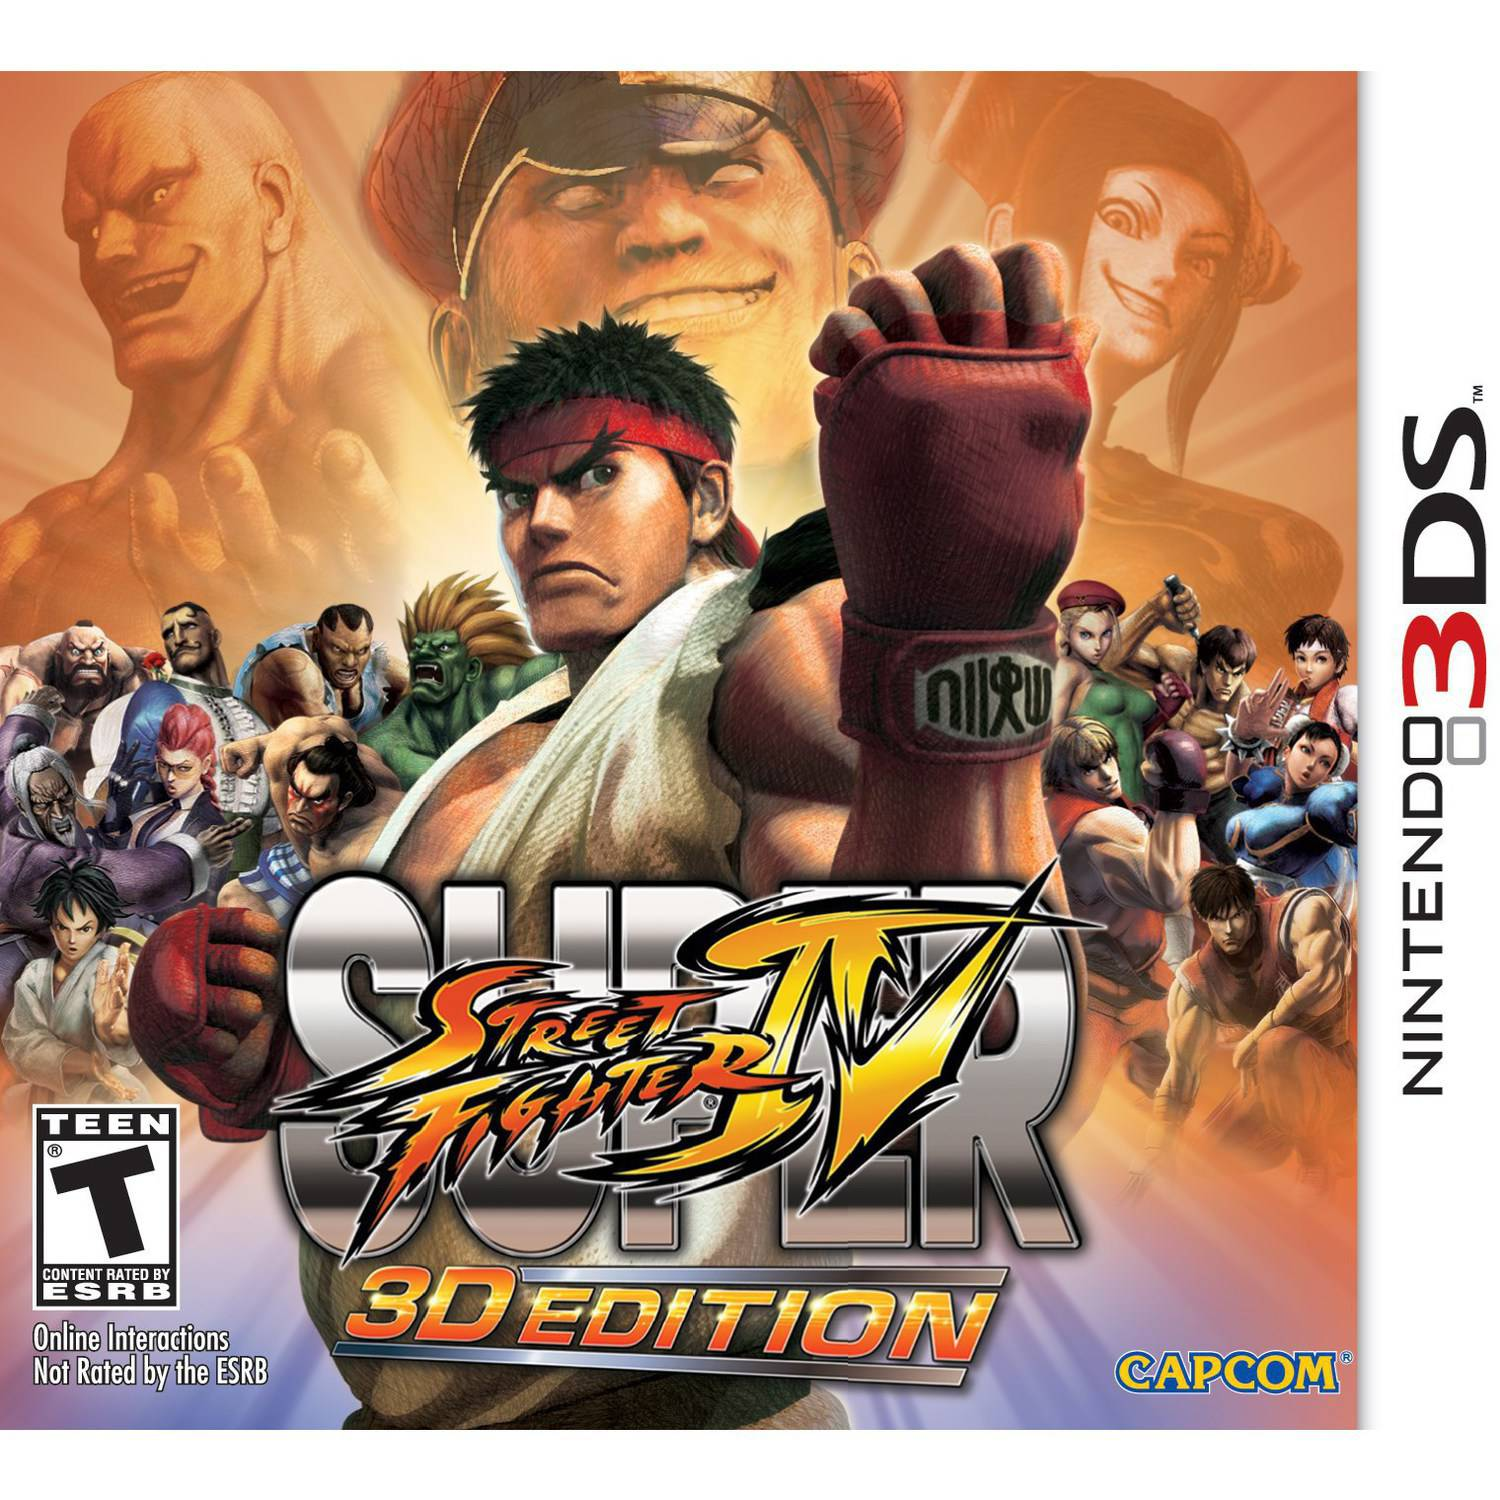 Super Street Fighter IV 3D Edition (Nintendo 3DS) - Pre-Owned